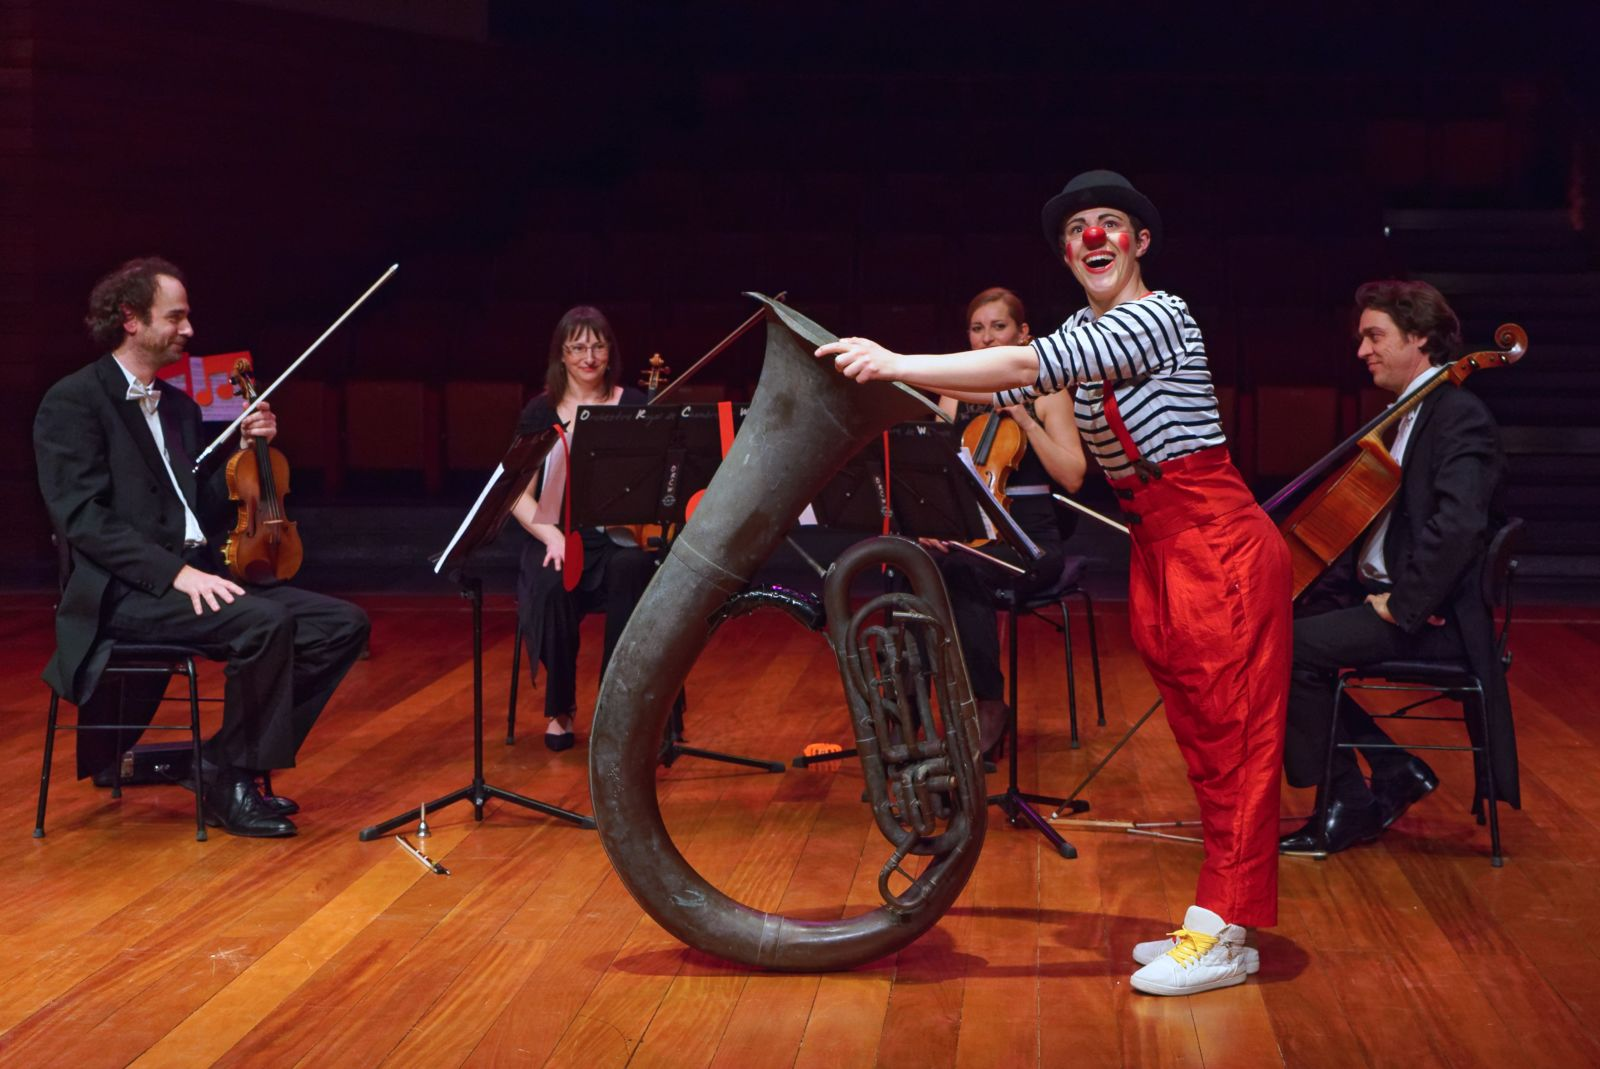 Concert: un clown au pays (...)